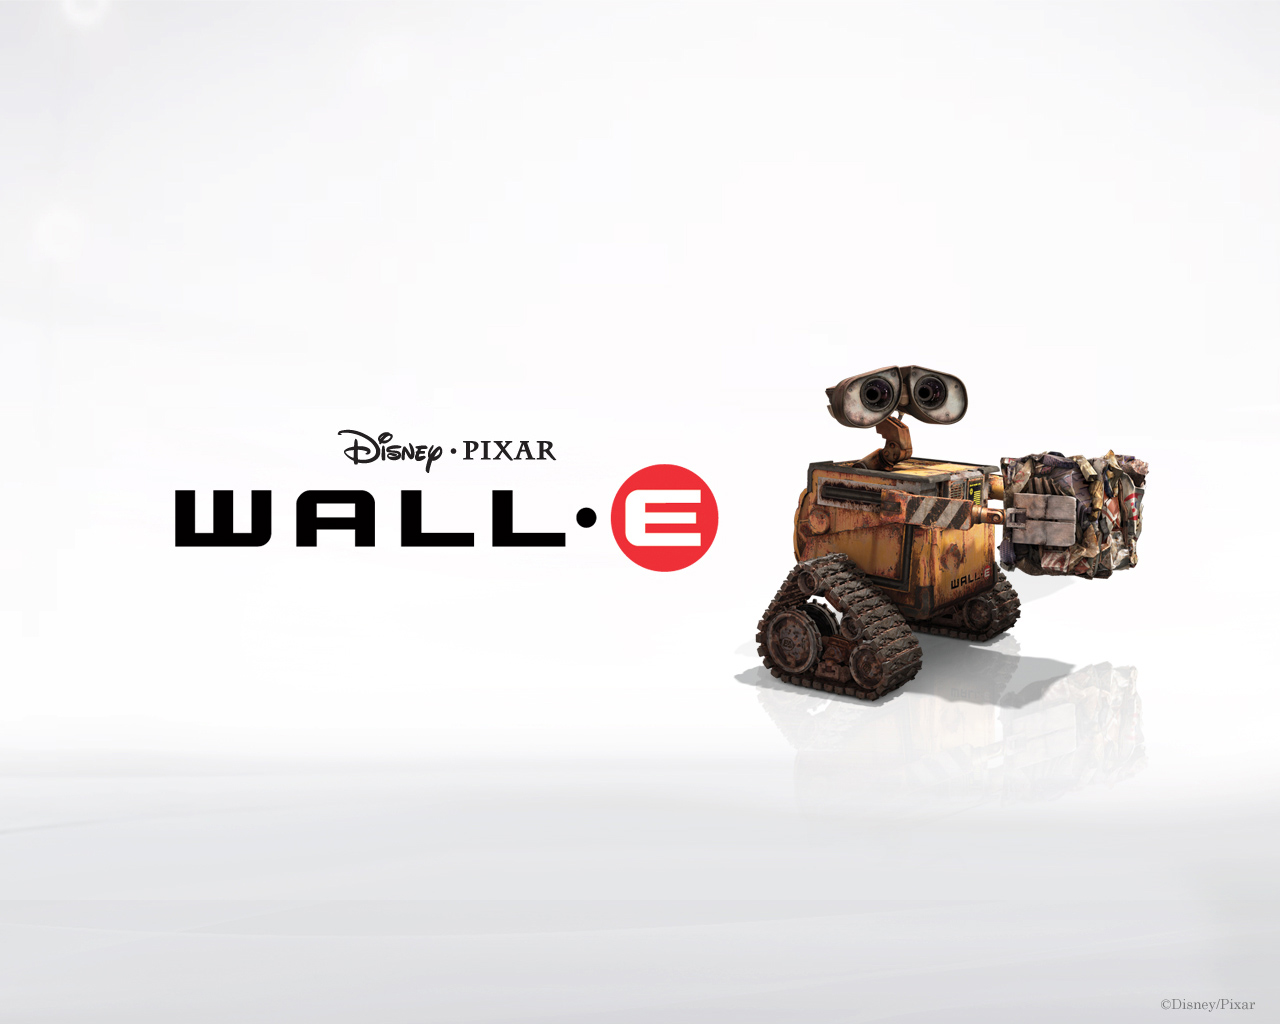 wall e After hundreds of lonely years of doing what he was built for, the curious and lovable wall-e discovers a new purpose in life when he meets a sleek search robot named.